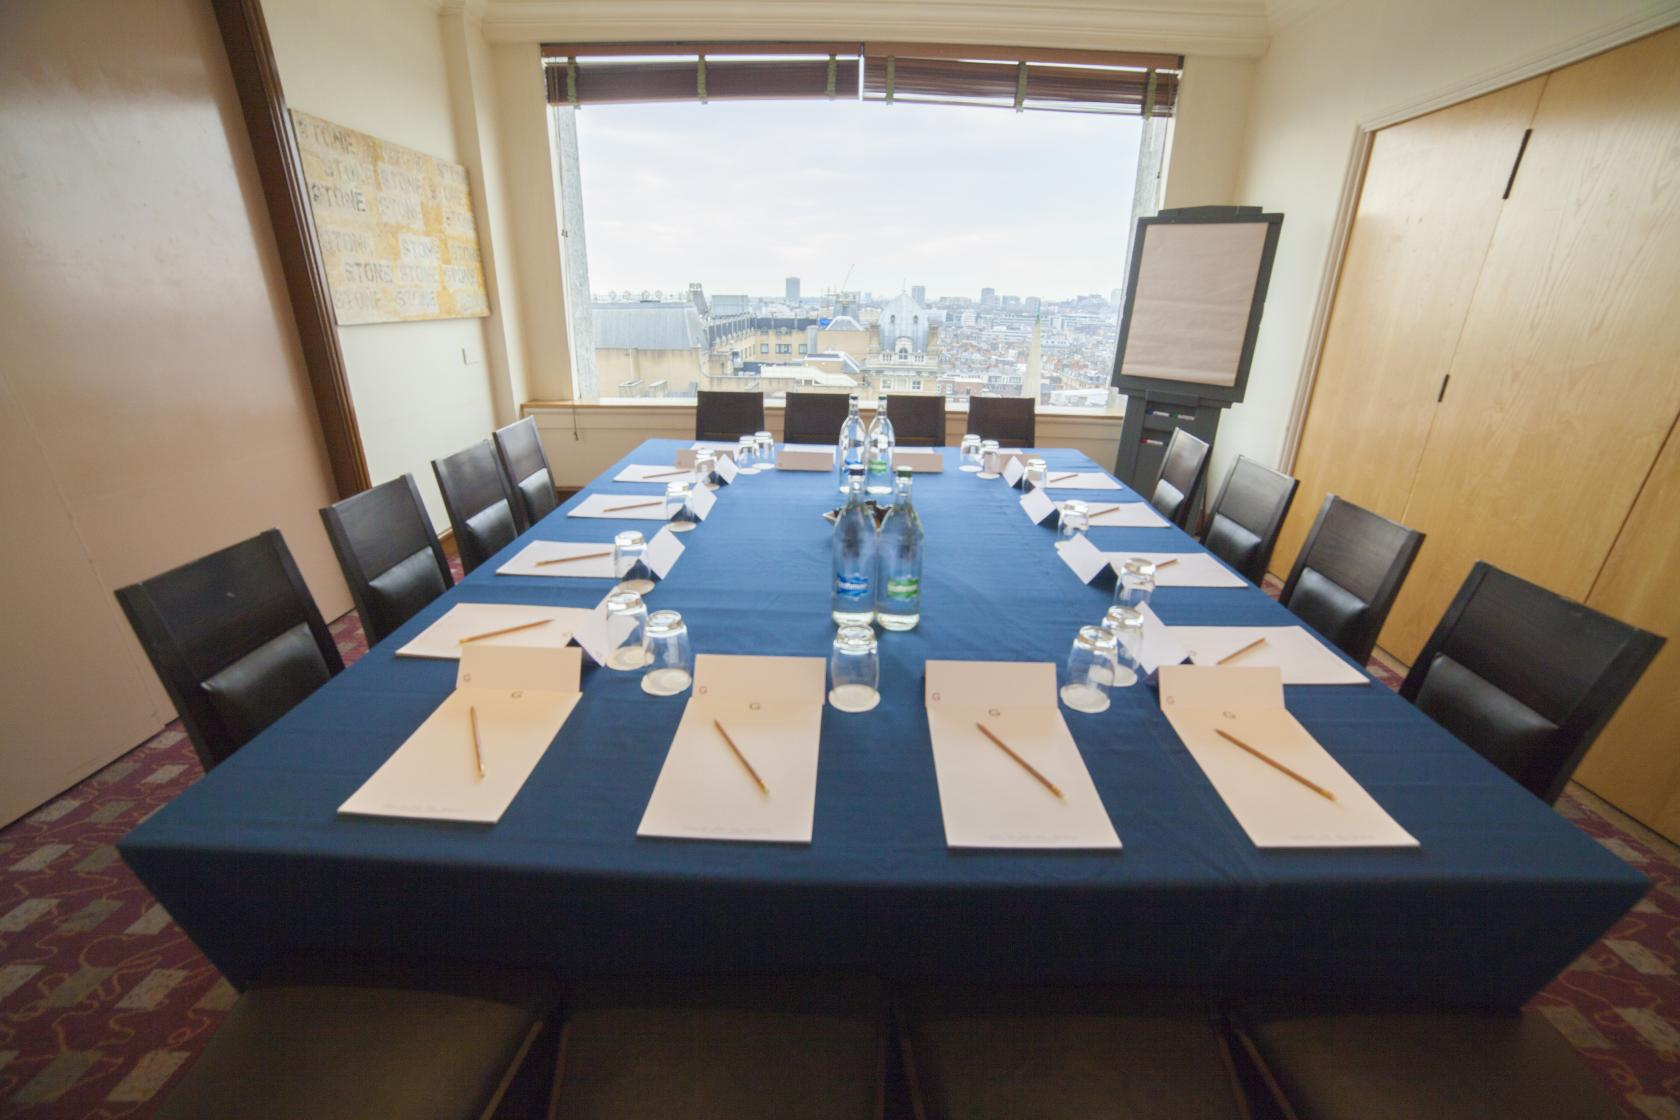 Saint Georges Hotel offers a beautiful meeting room with a view of the London skyline